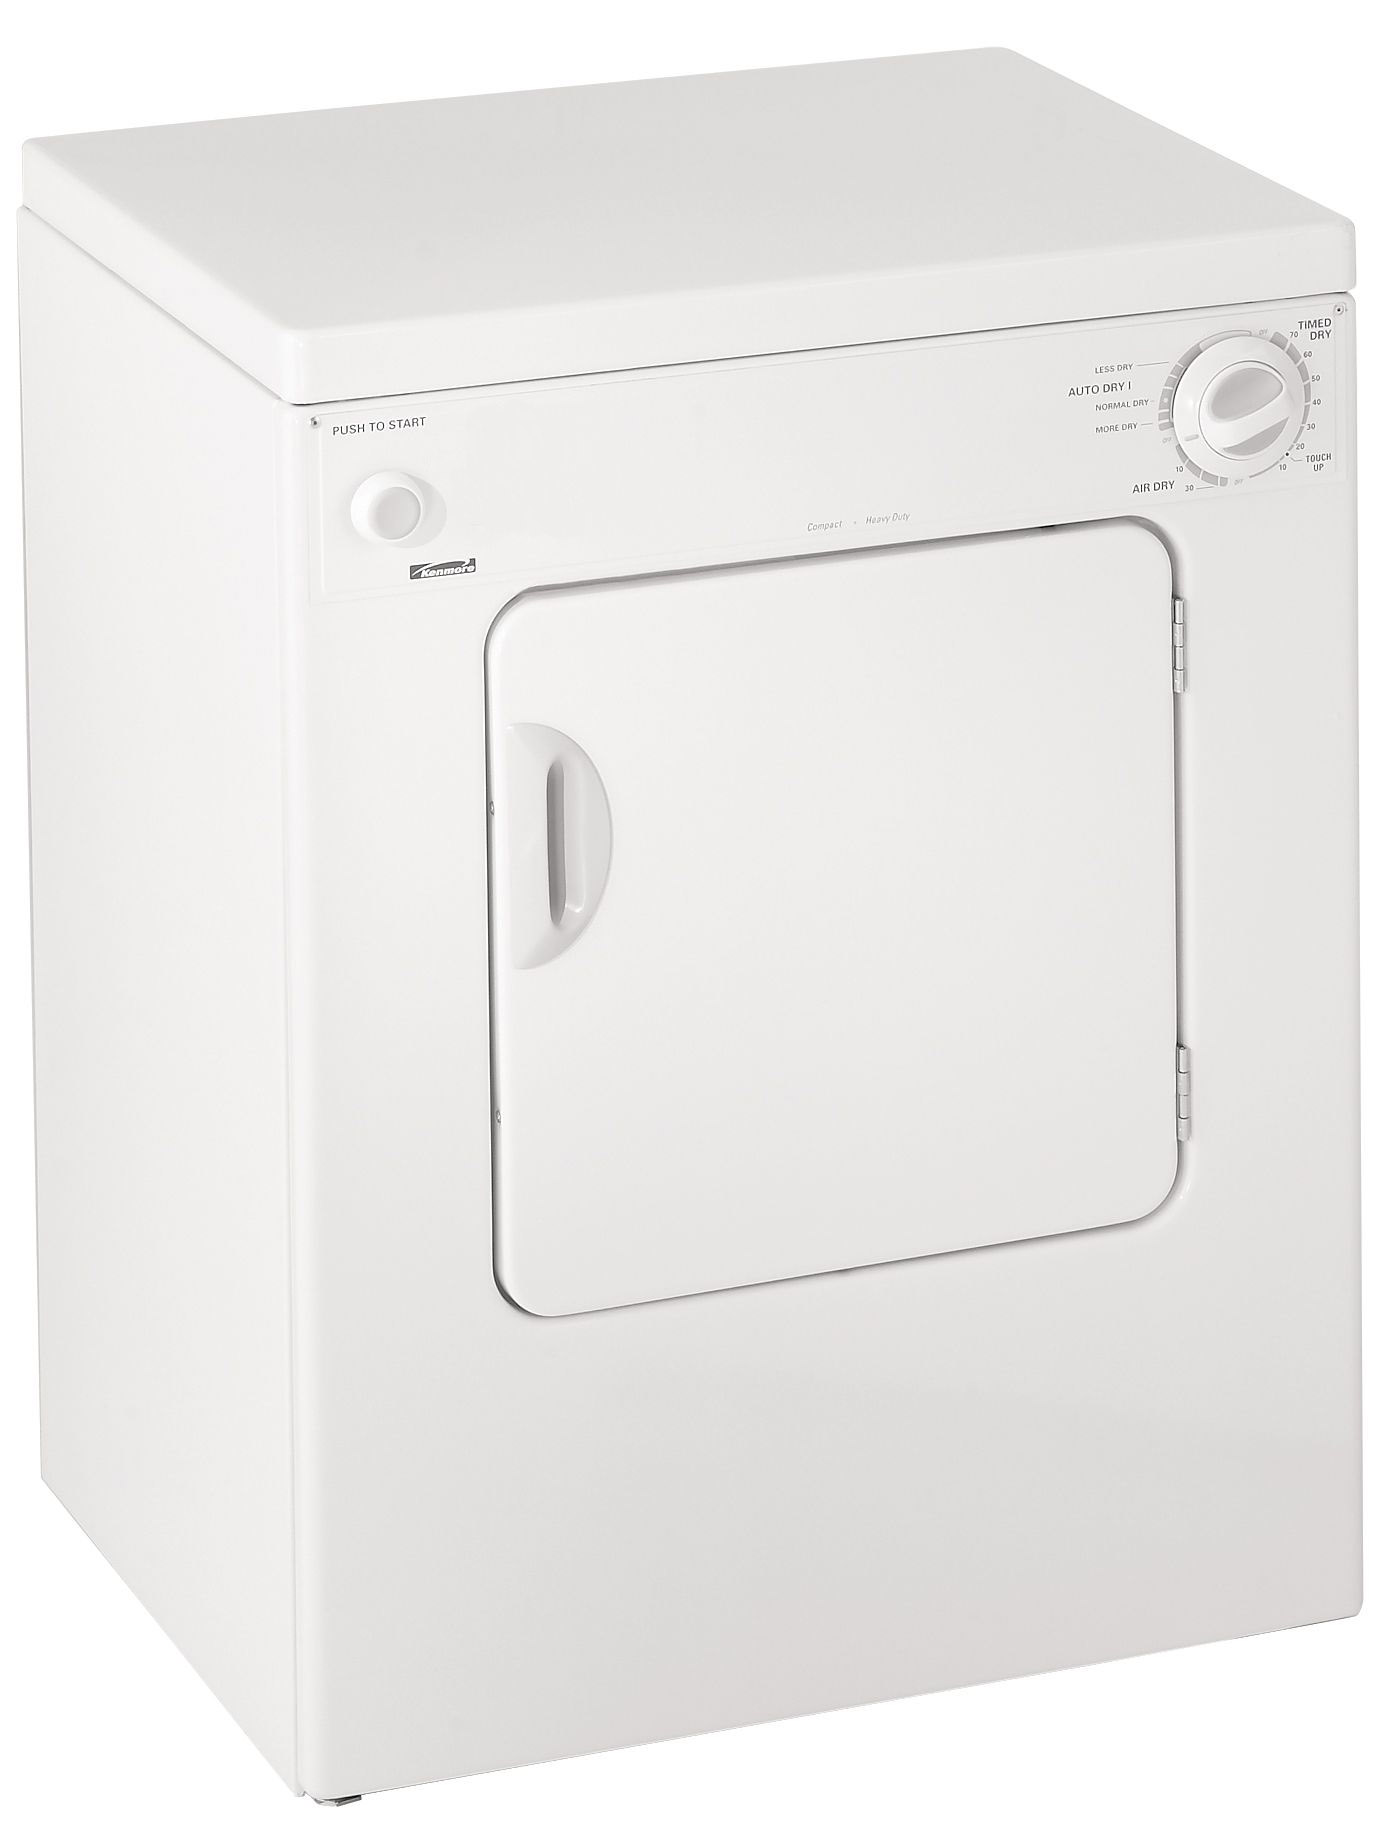 Small Clothes Dryer Kenmore 84722 3 4 Cu Ft Electric Compact Portable Extra